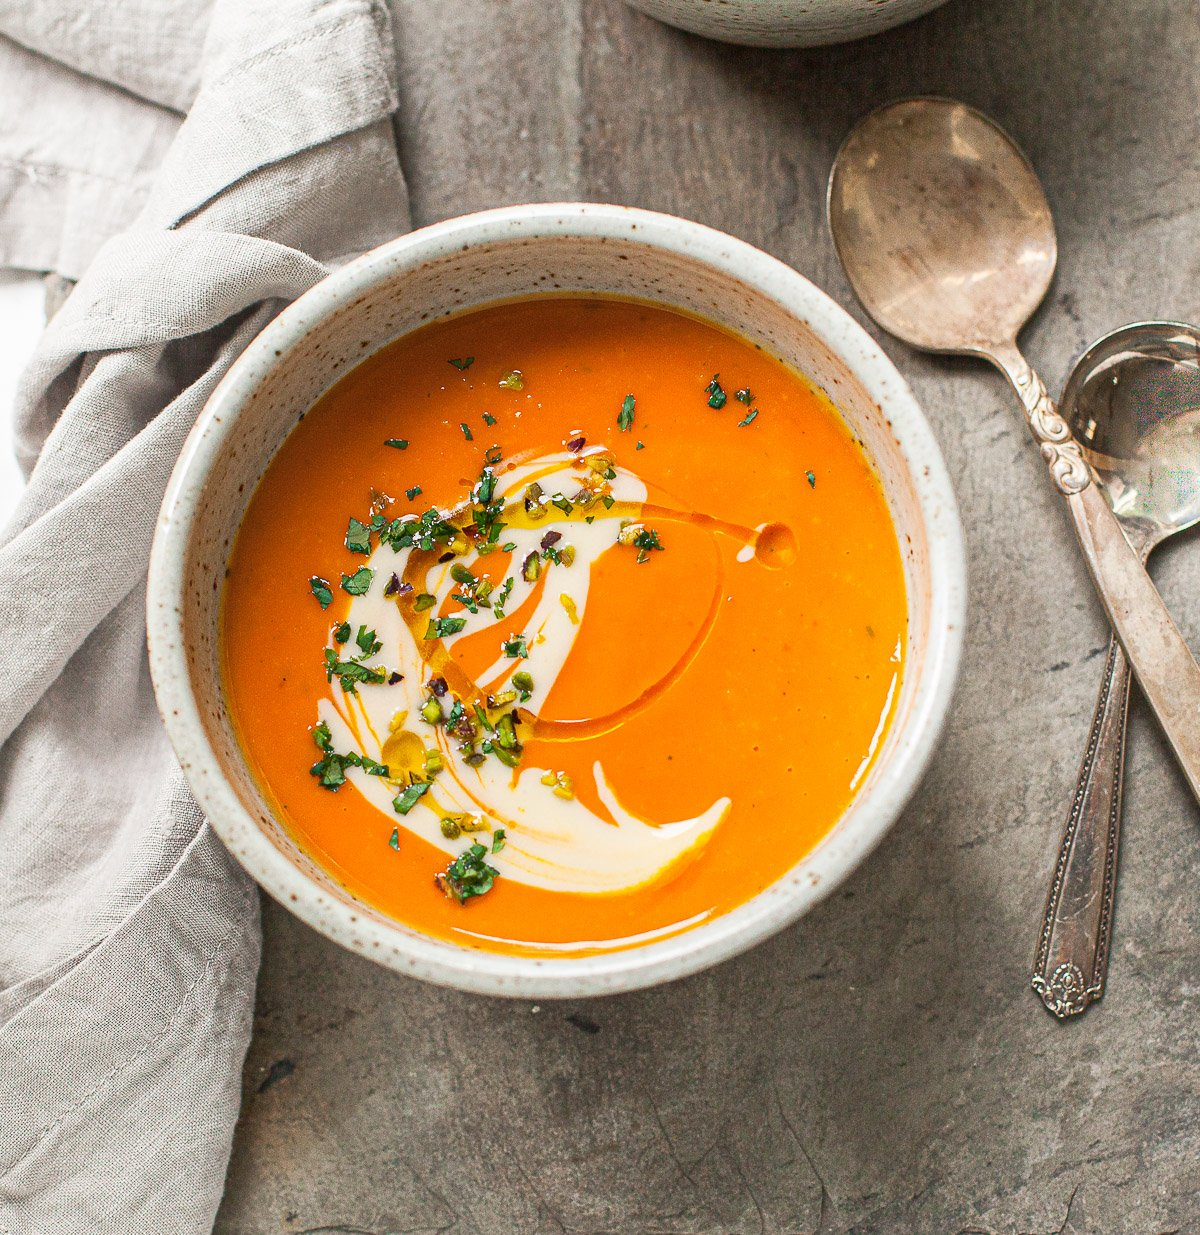 Image of a bowl of smooth butternut squash soup, topped with pumpkin seeds, herbs and a swirl of cream.